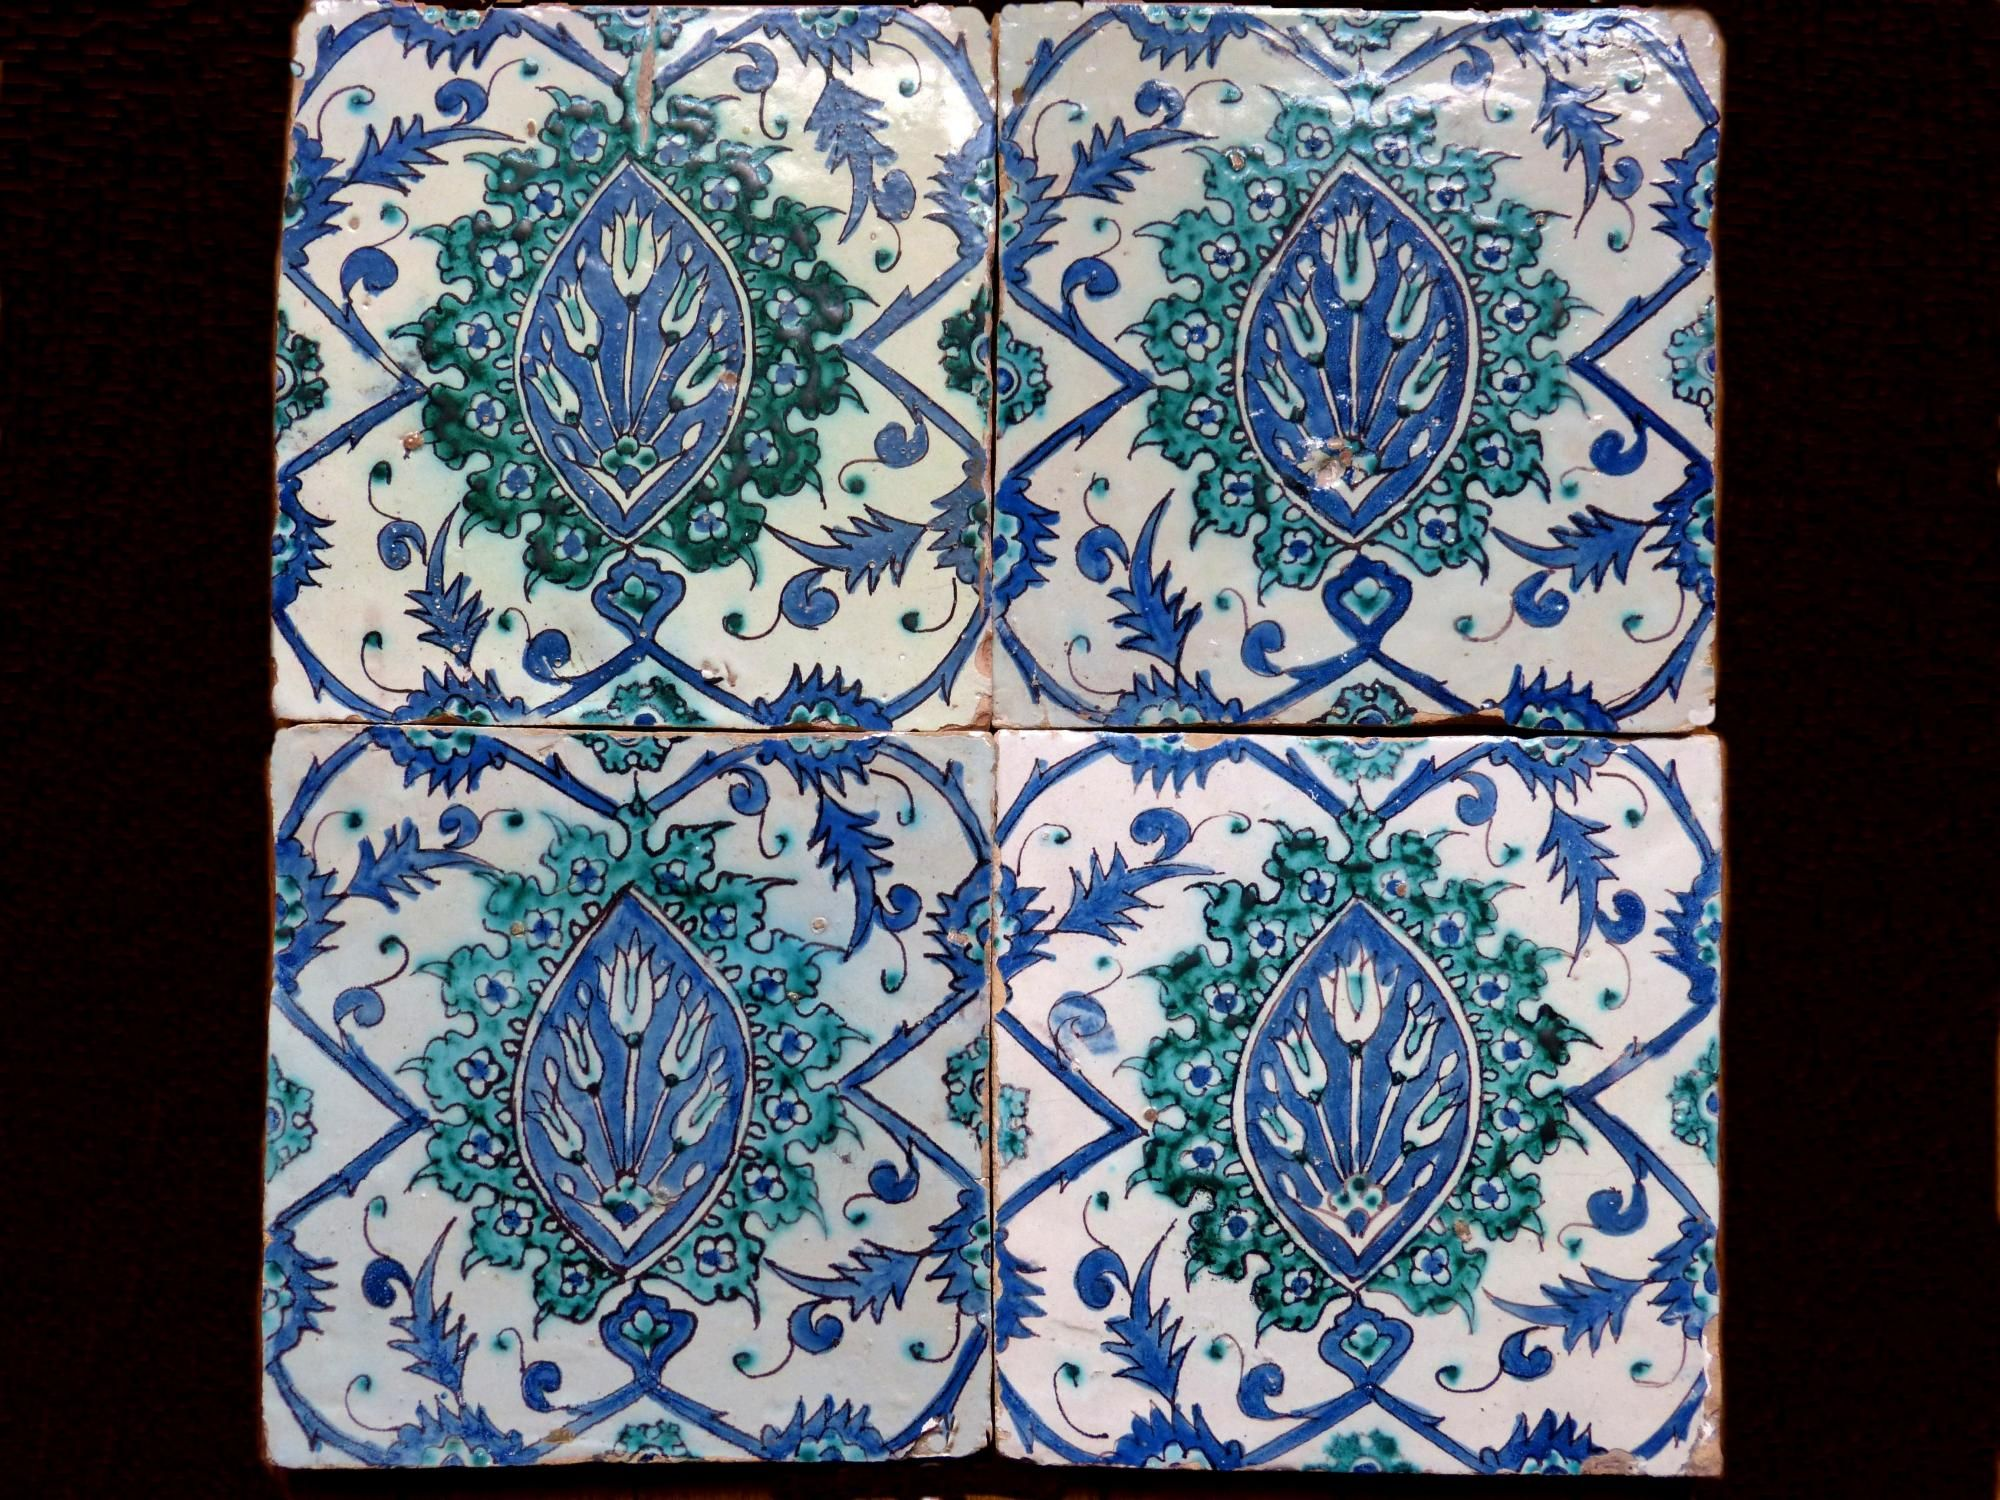 Antique for sale Islamic faience safavid persian tiles of ceramic ...